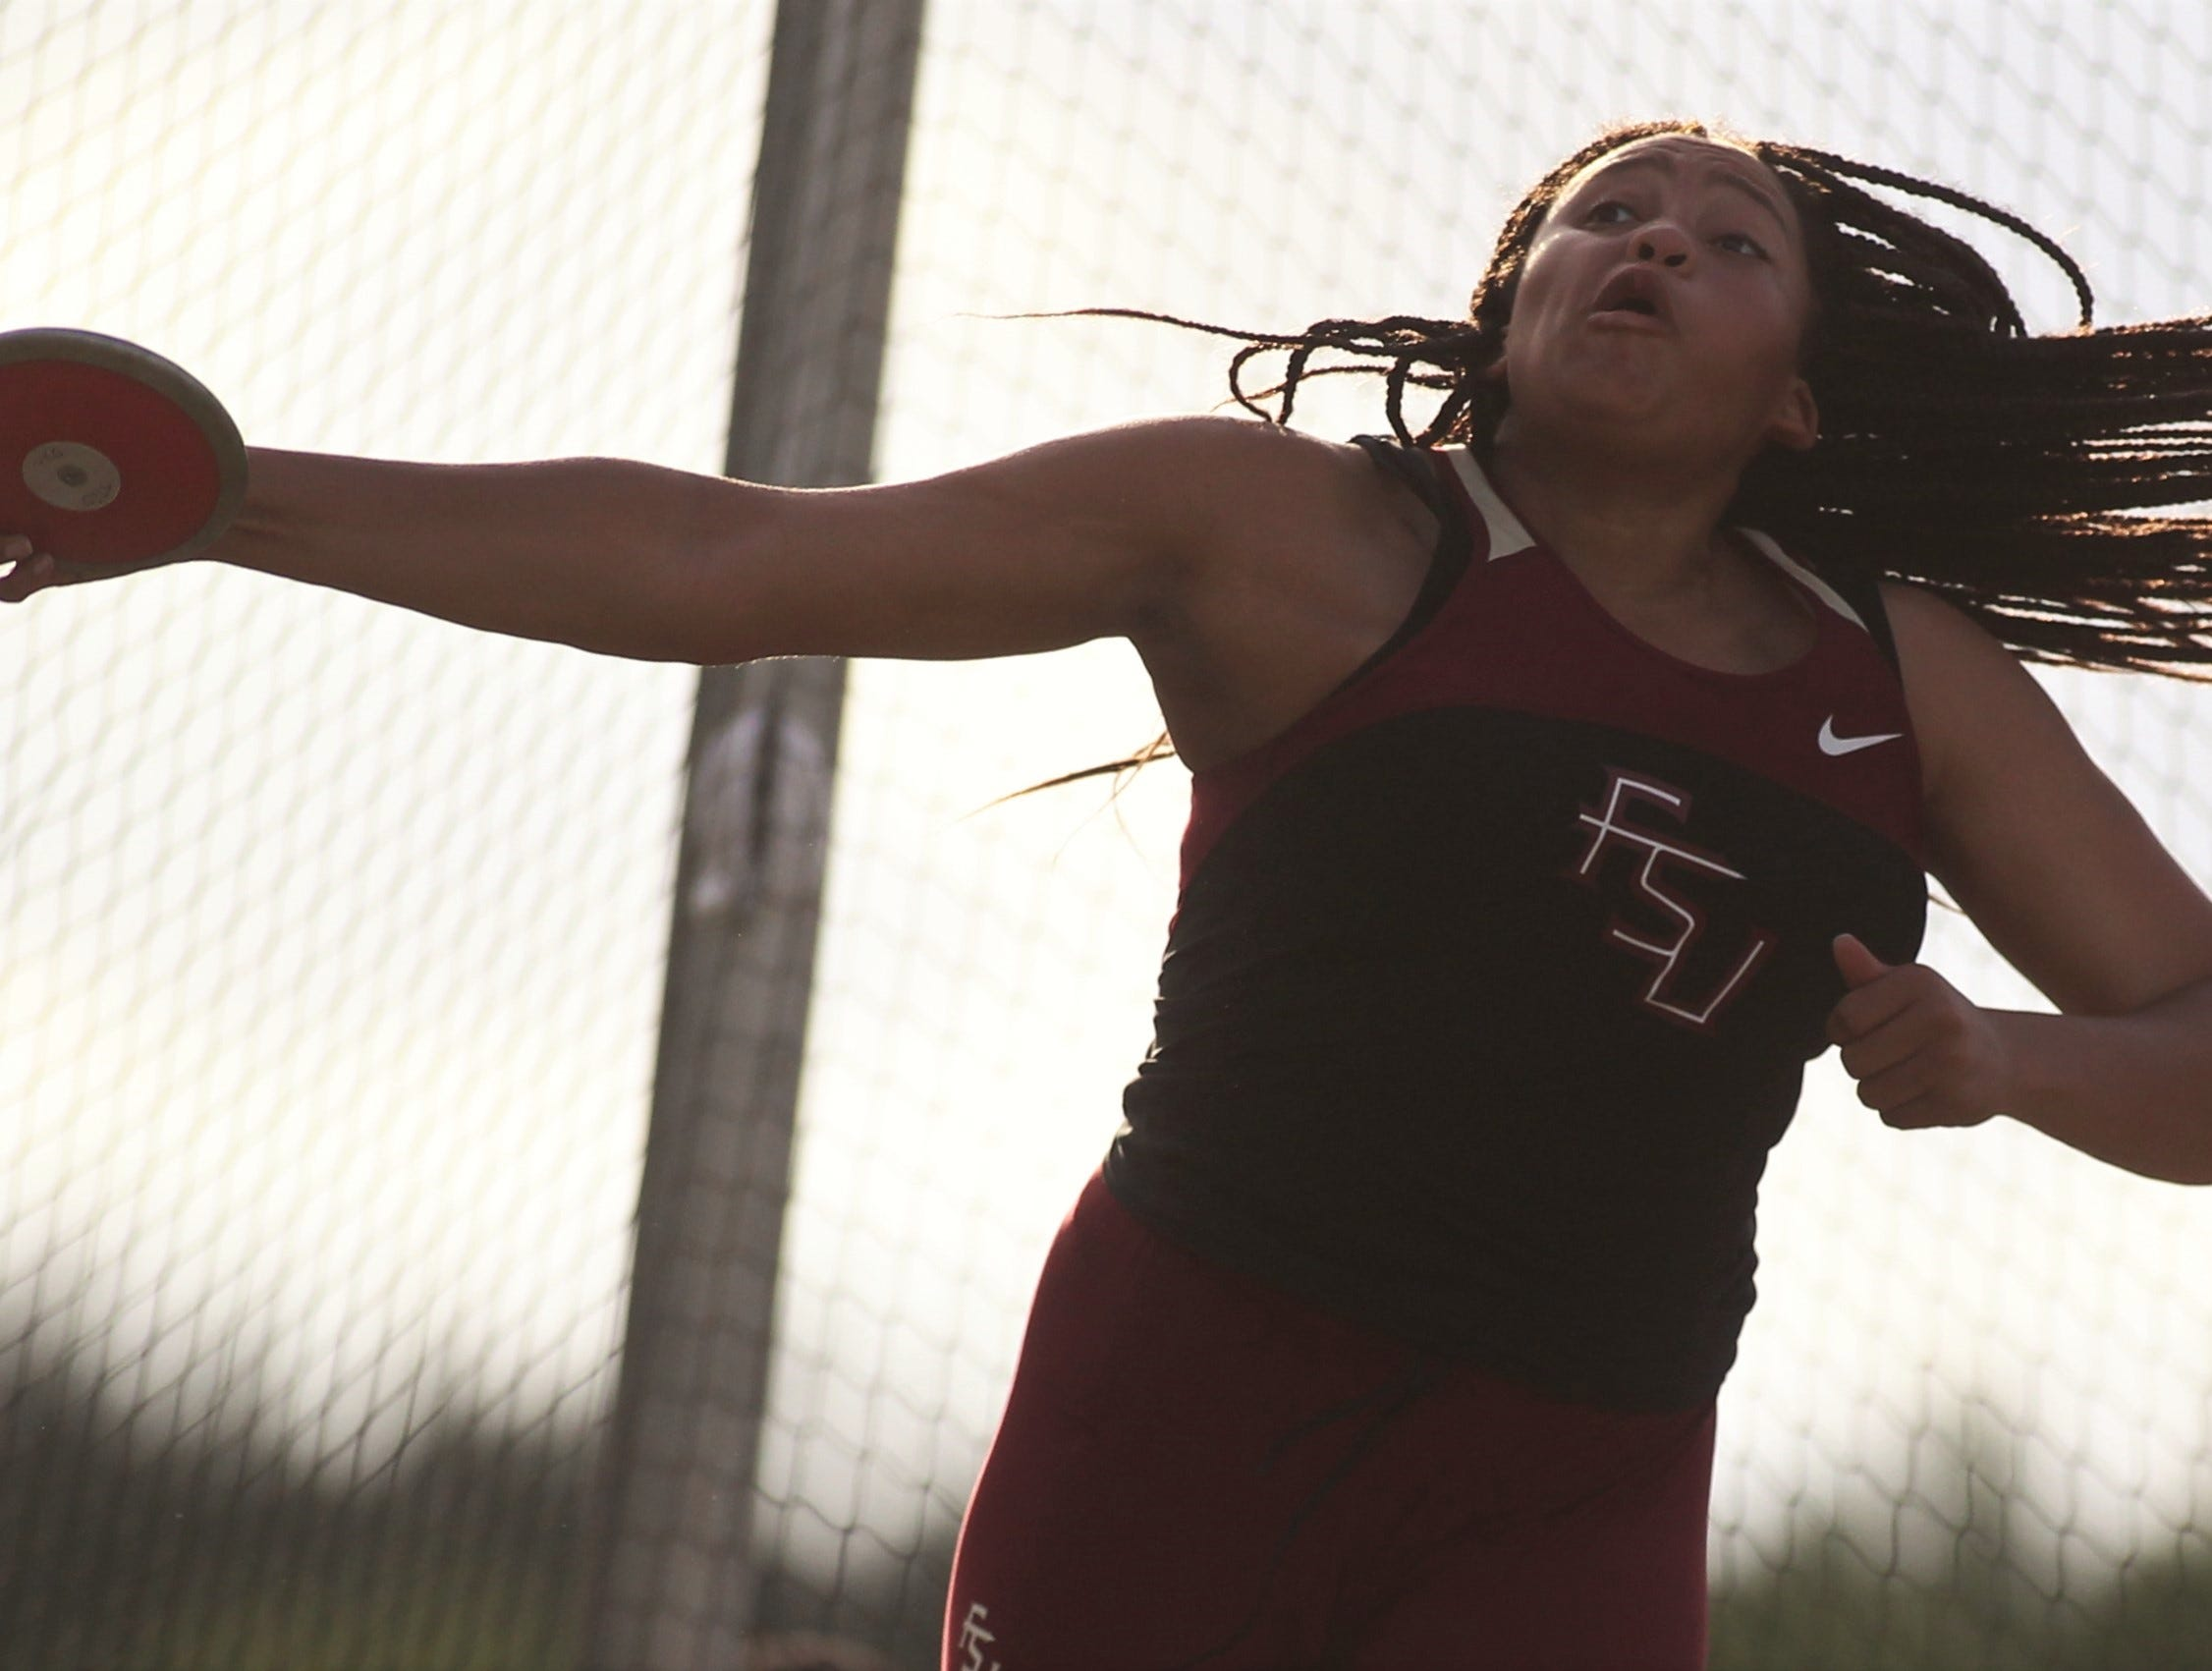 Florida High junior Jhordynn Stallworth throws discus during District 3-1A and 2-2A track and field meets at Florida High on Saturday, April 13, 2019.